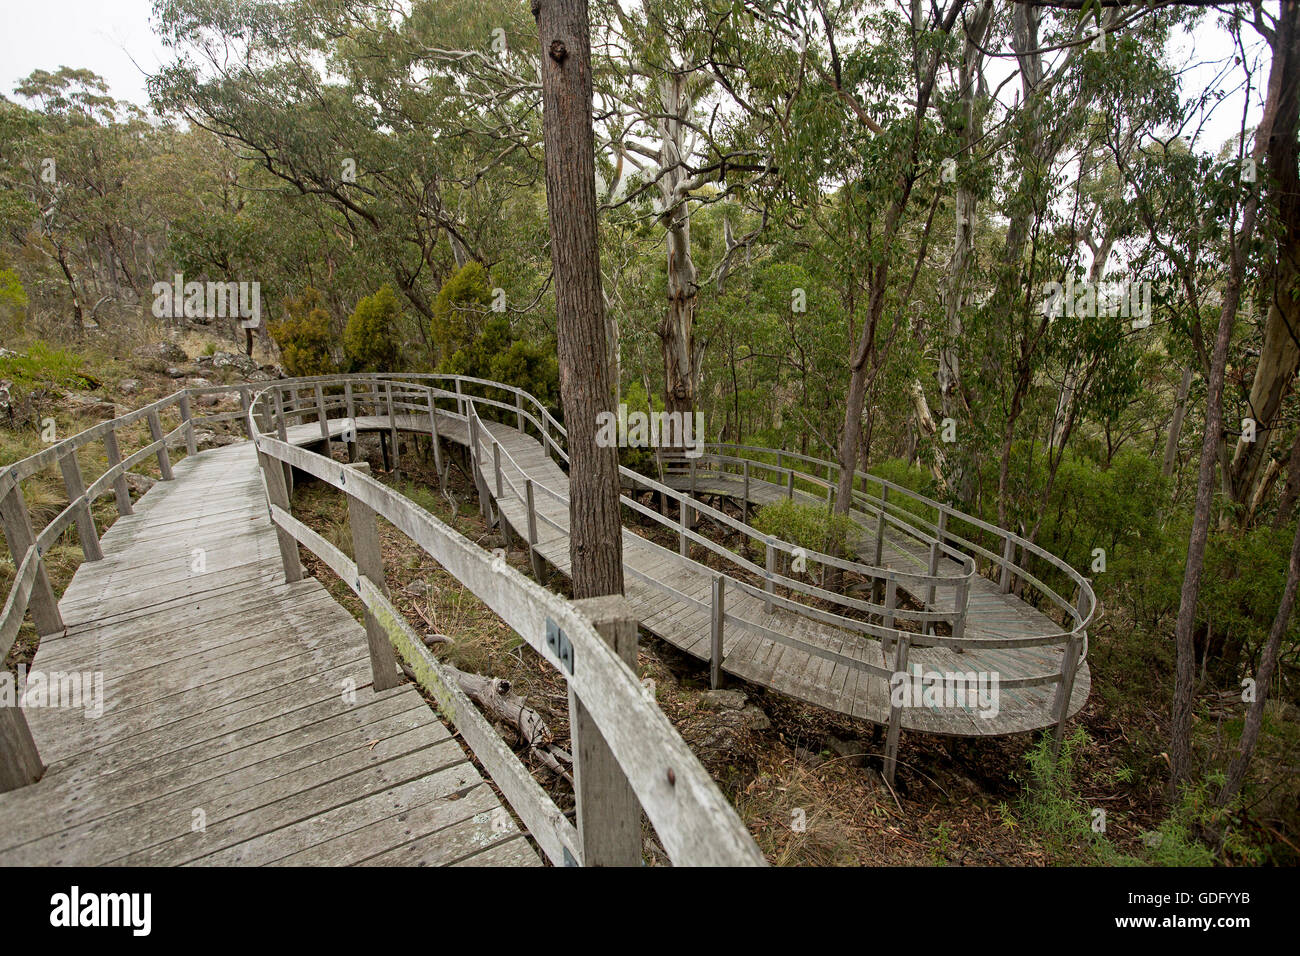 Unique curved wooden boardwalk snaking through forest above rocky hillside to protect environment & provide access Stock Photo